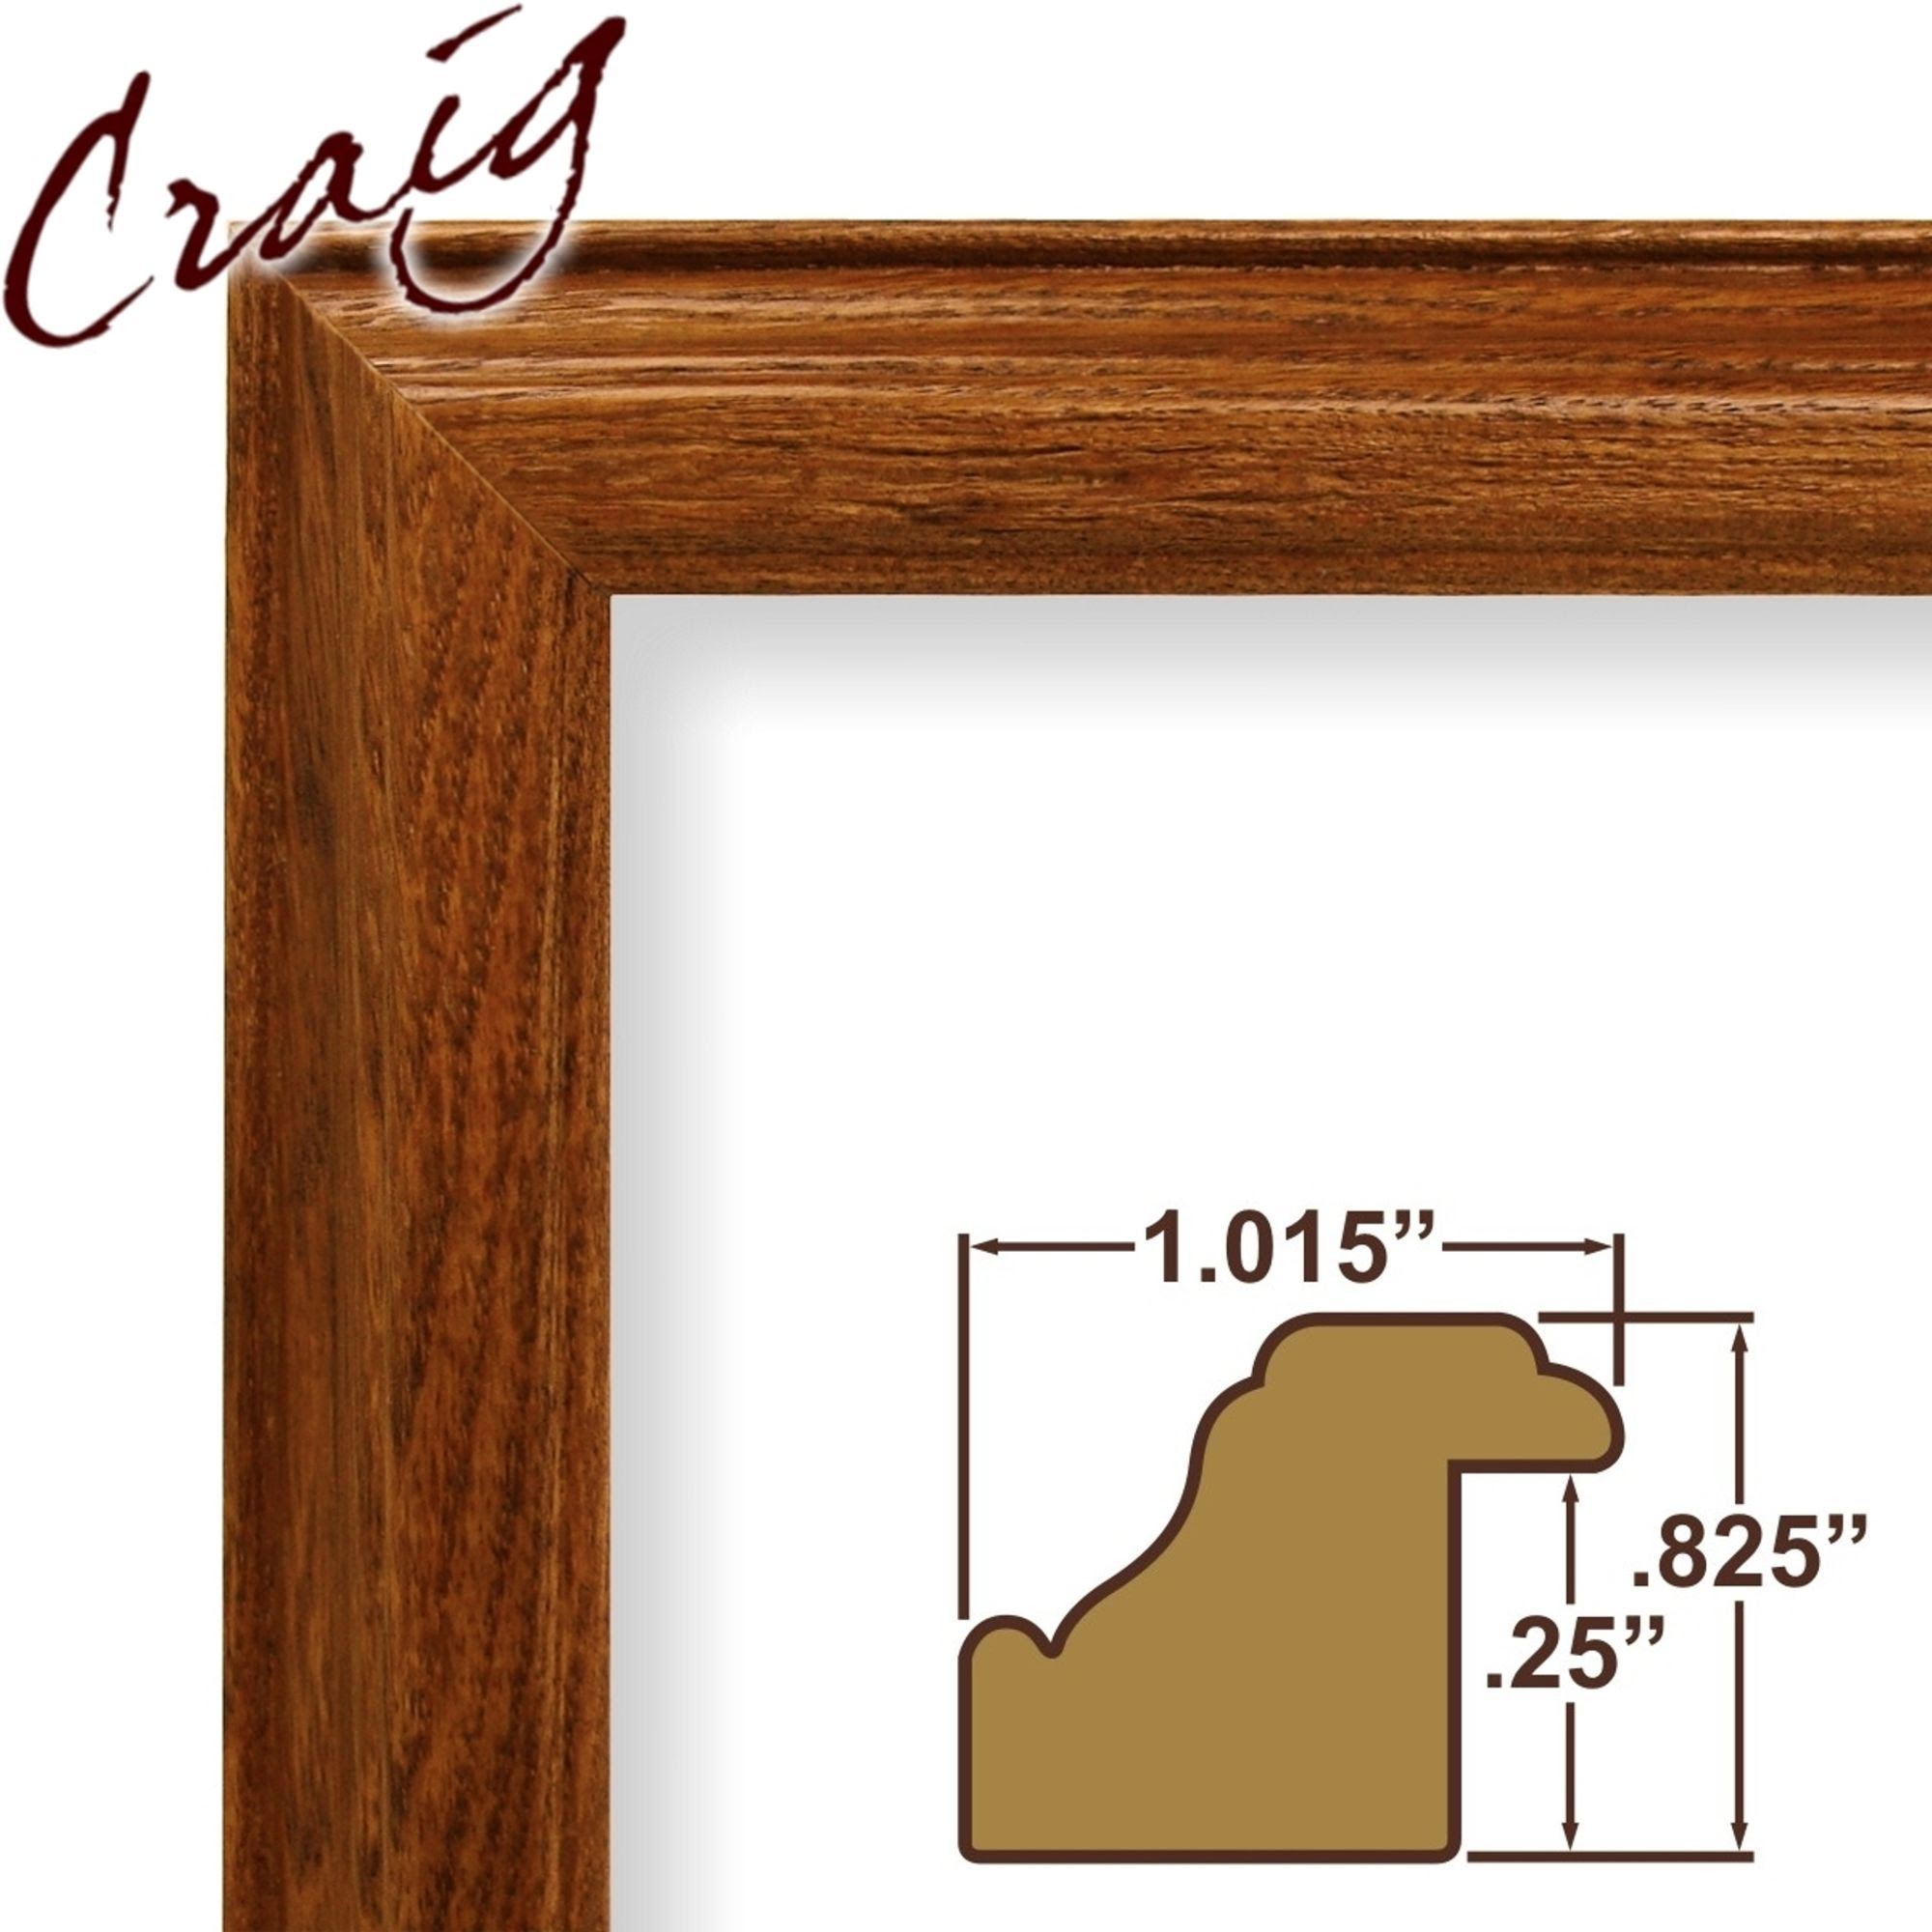 Craig Frames Inc 12 X 16 Brown Wood Grain Finish 1015 Inch Wide